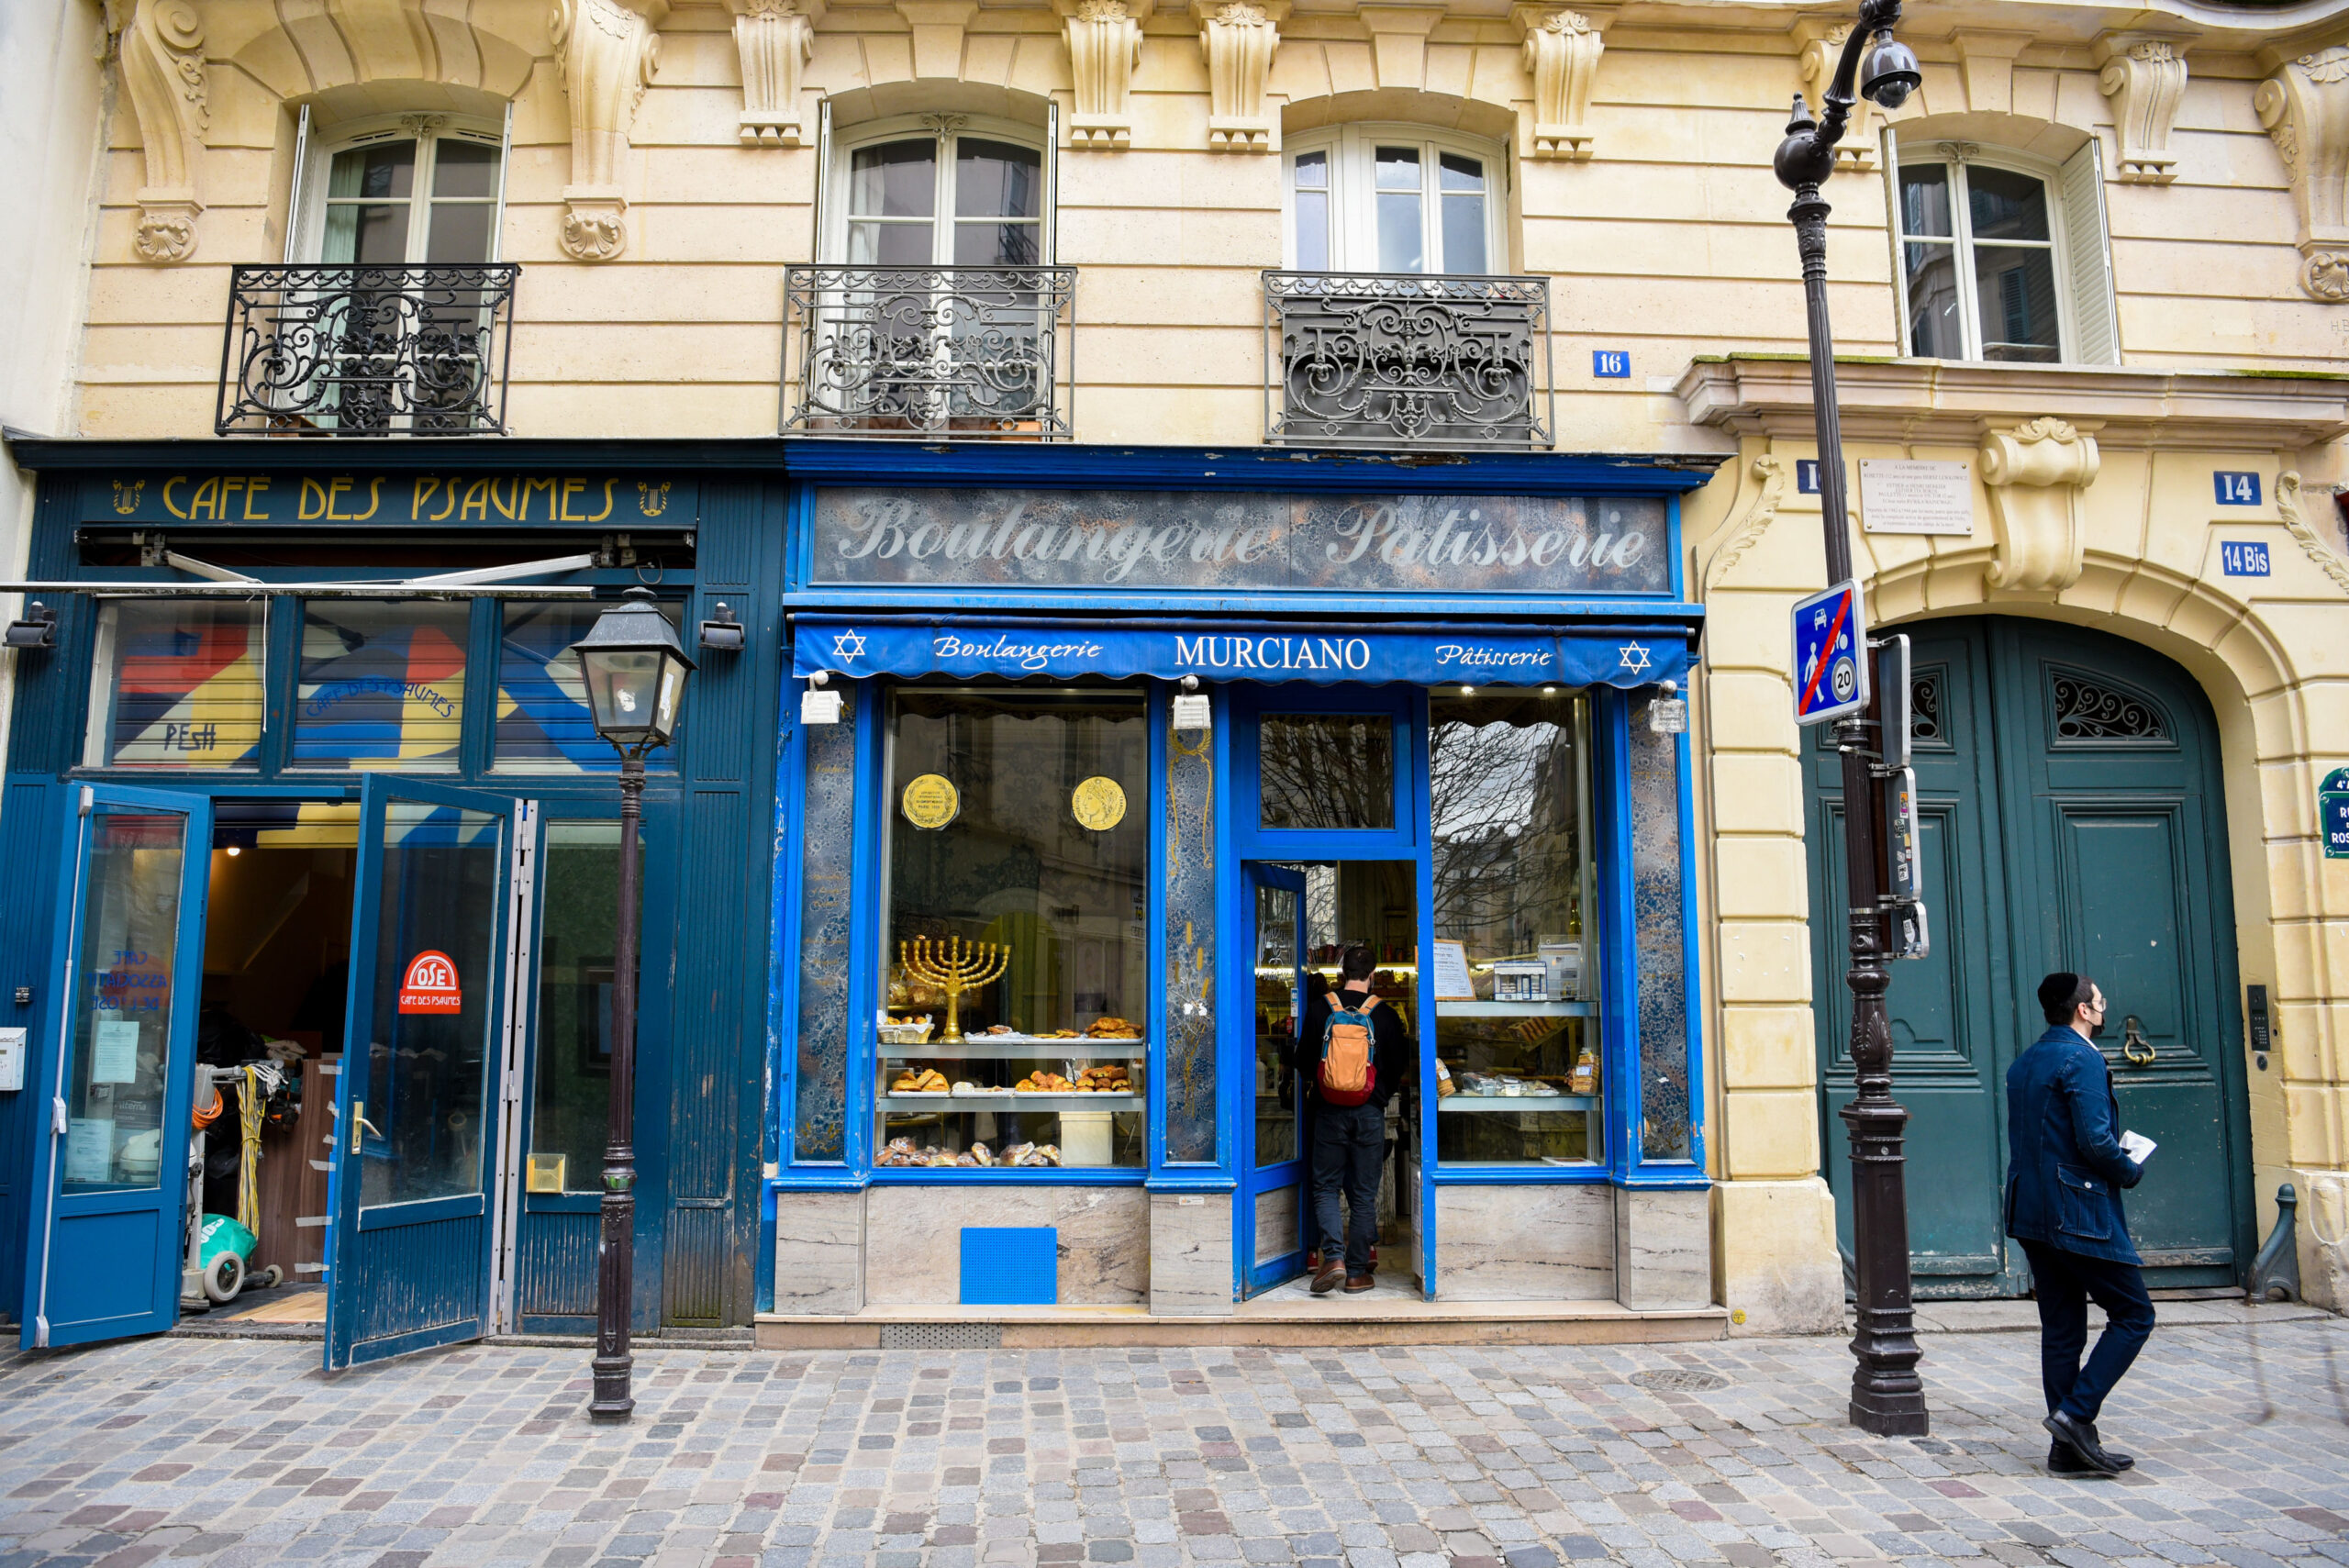 The outside of Boulangerie Murciano in Paris.